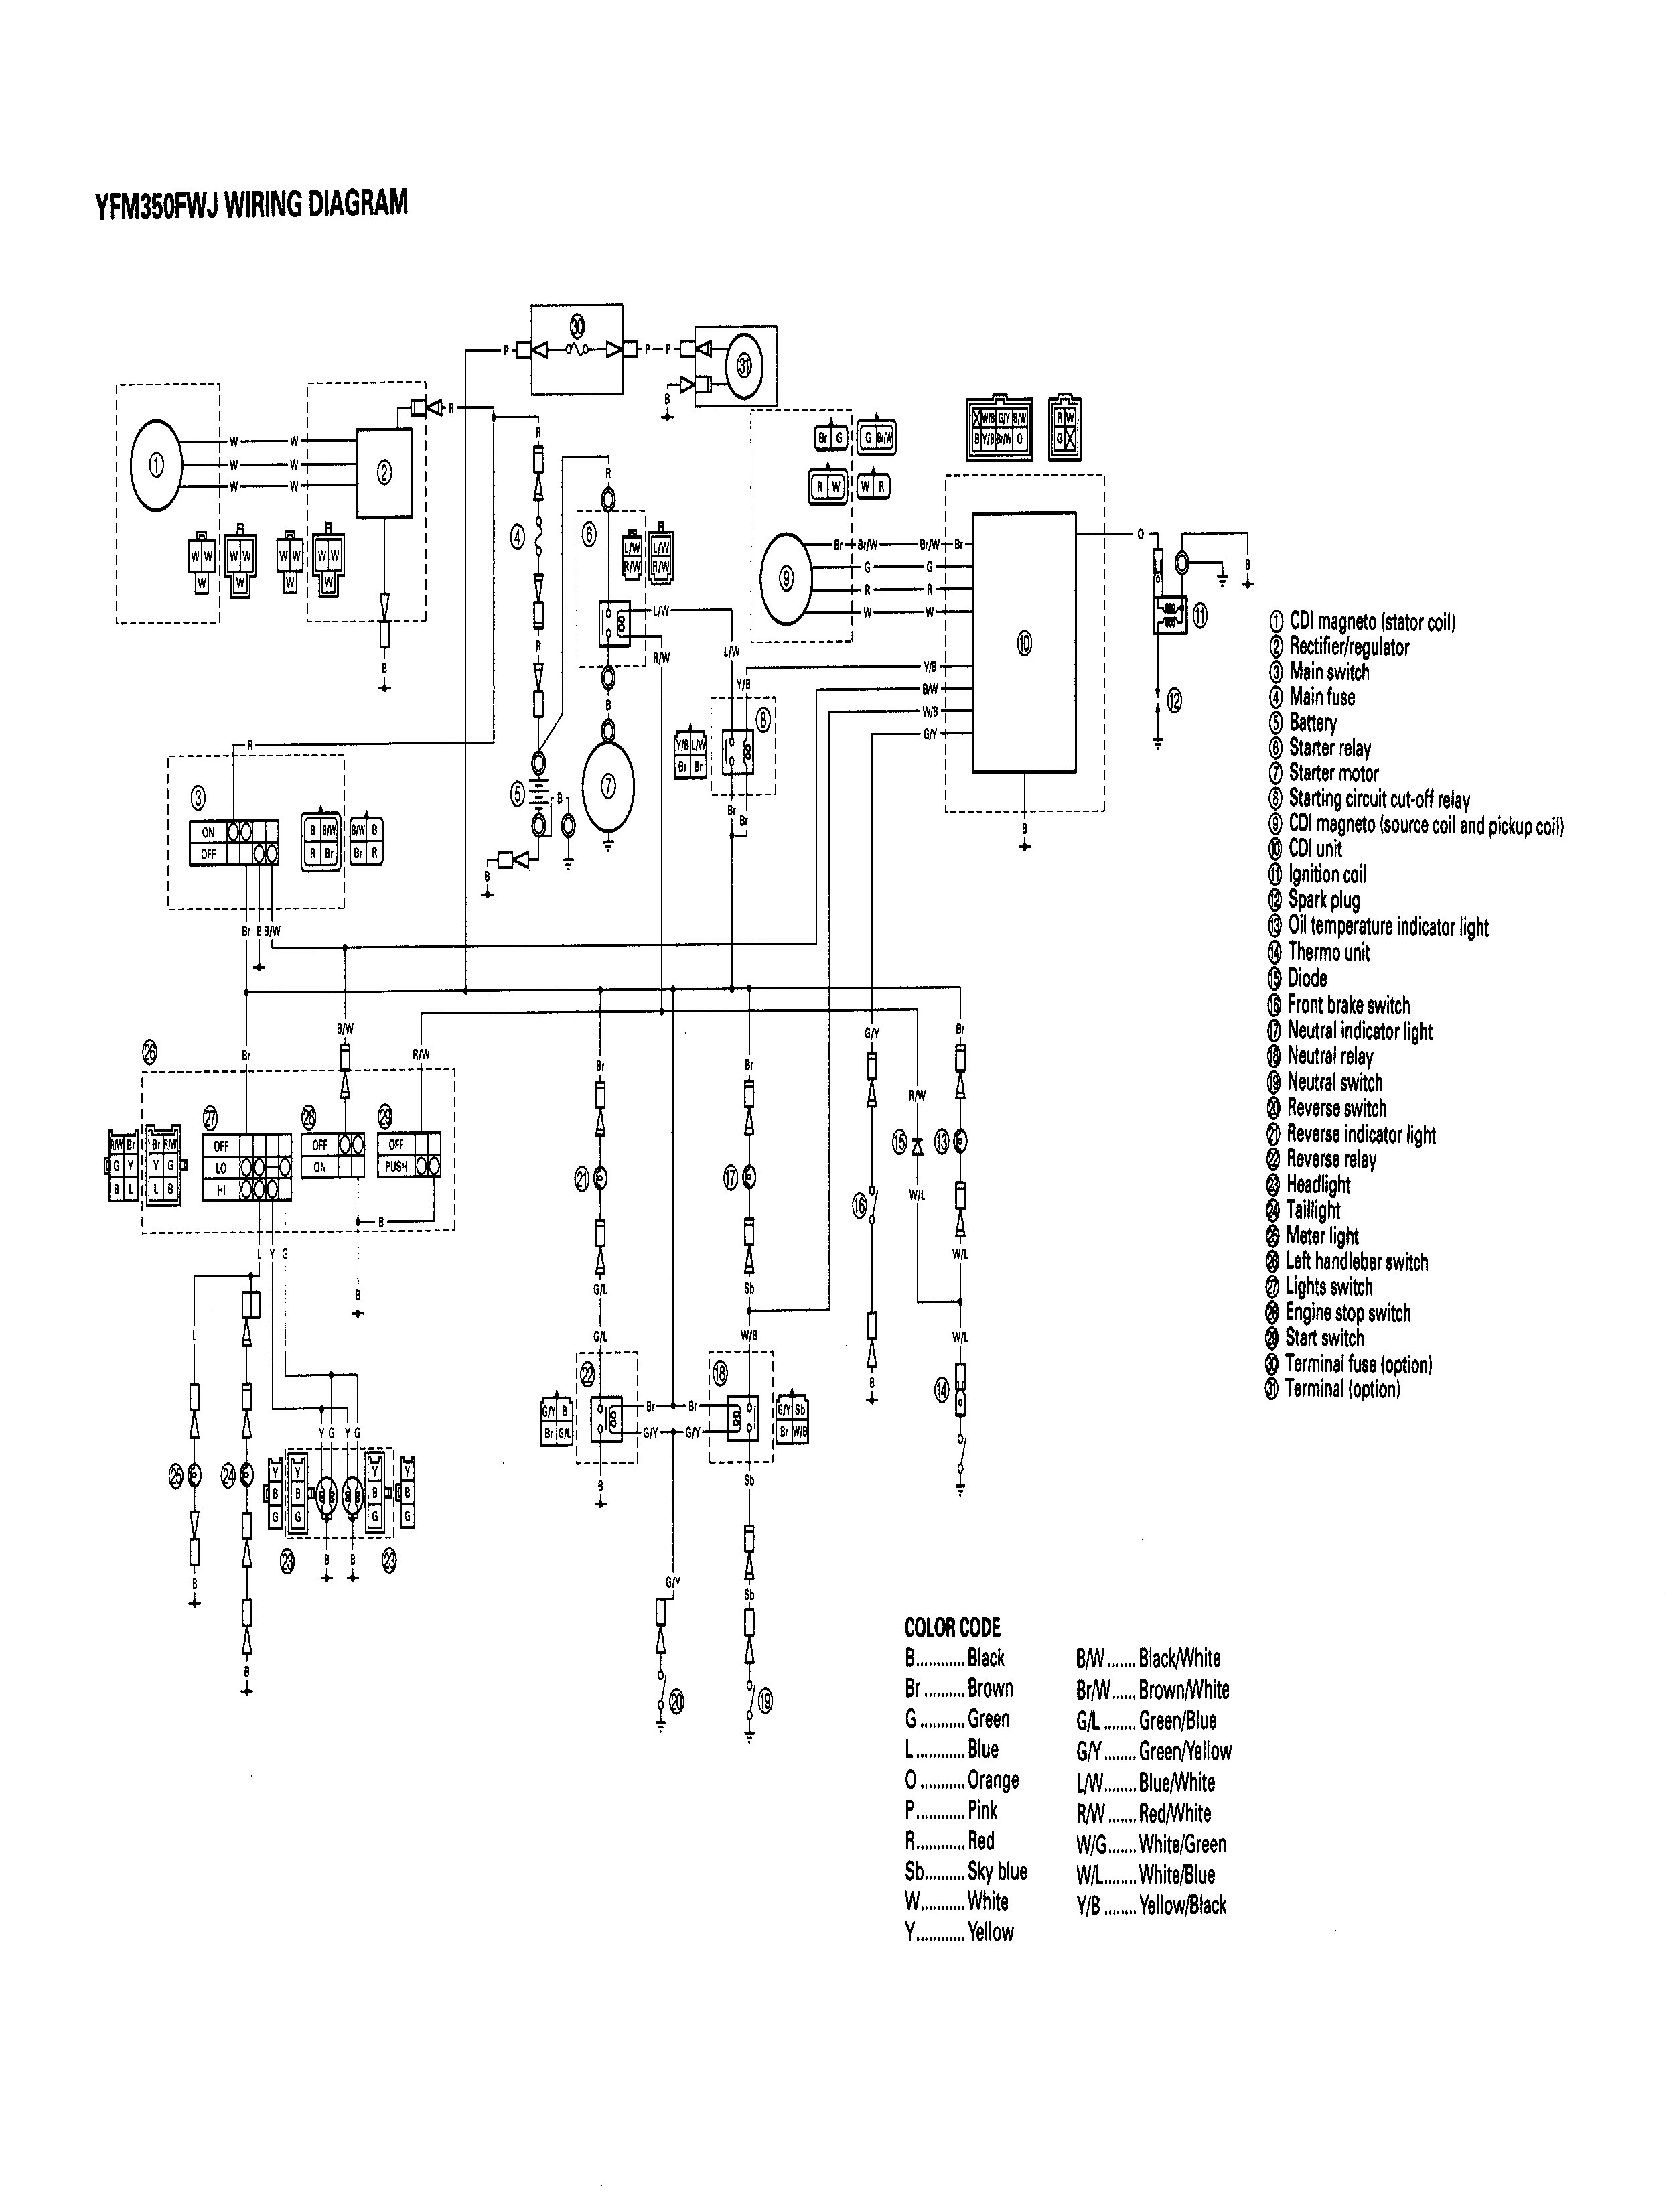 Golf Cart Wiring Diagram Yamaha Golf Cart Wiring Diagram Yamaha Golf